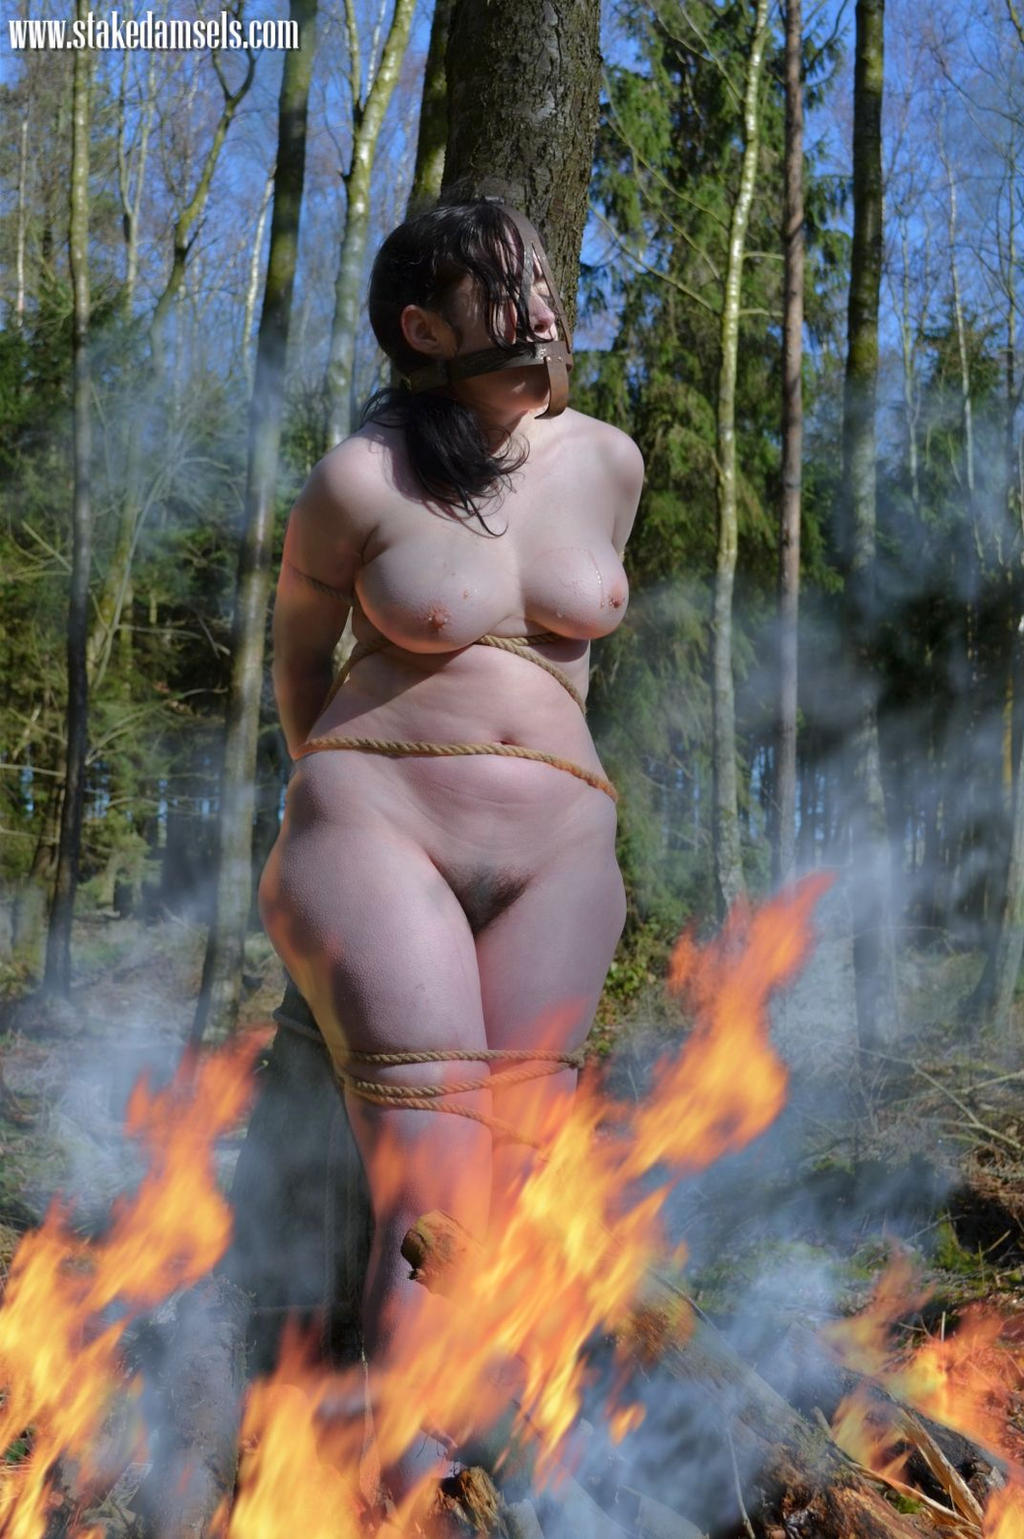 Naked Woman Burned At The Stake Sexy Babes Wallpaper | Free Hot Nude Porn  Pic Gallery